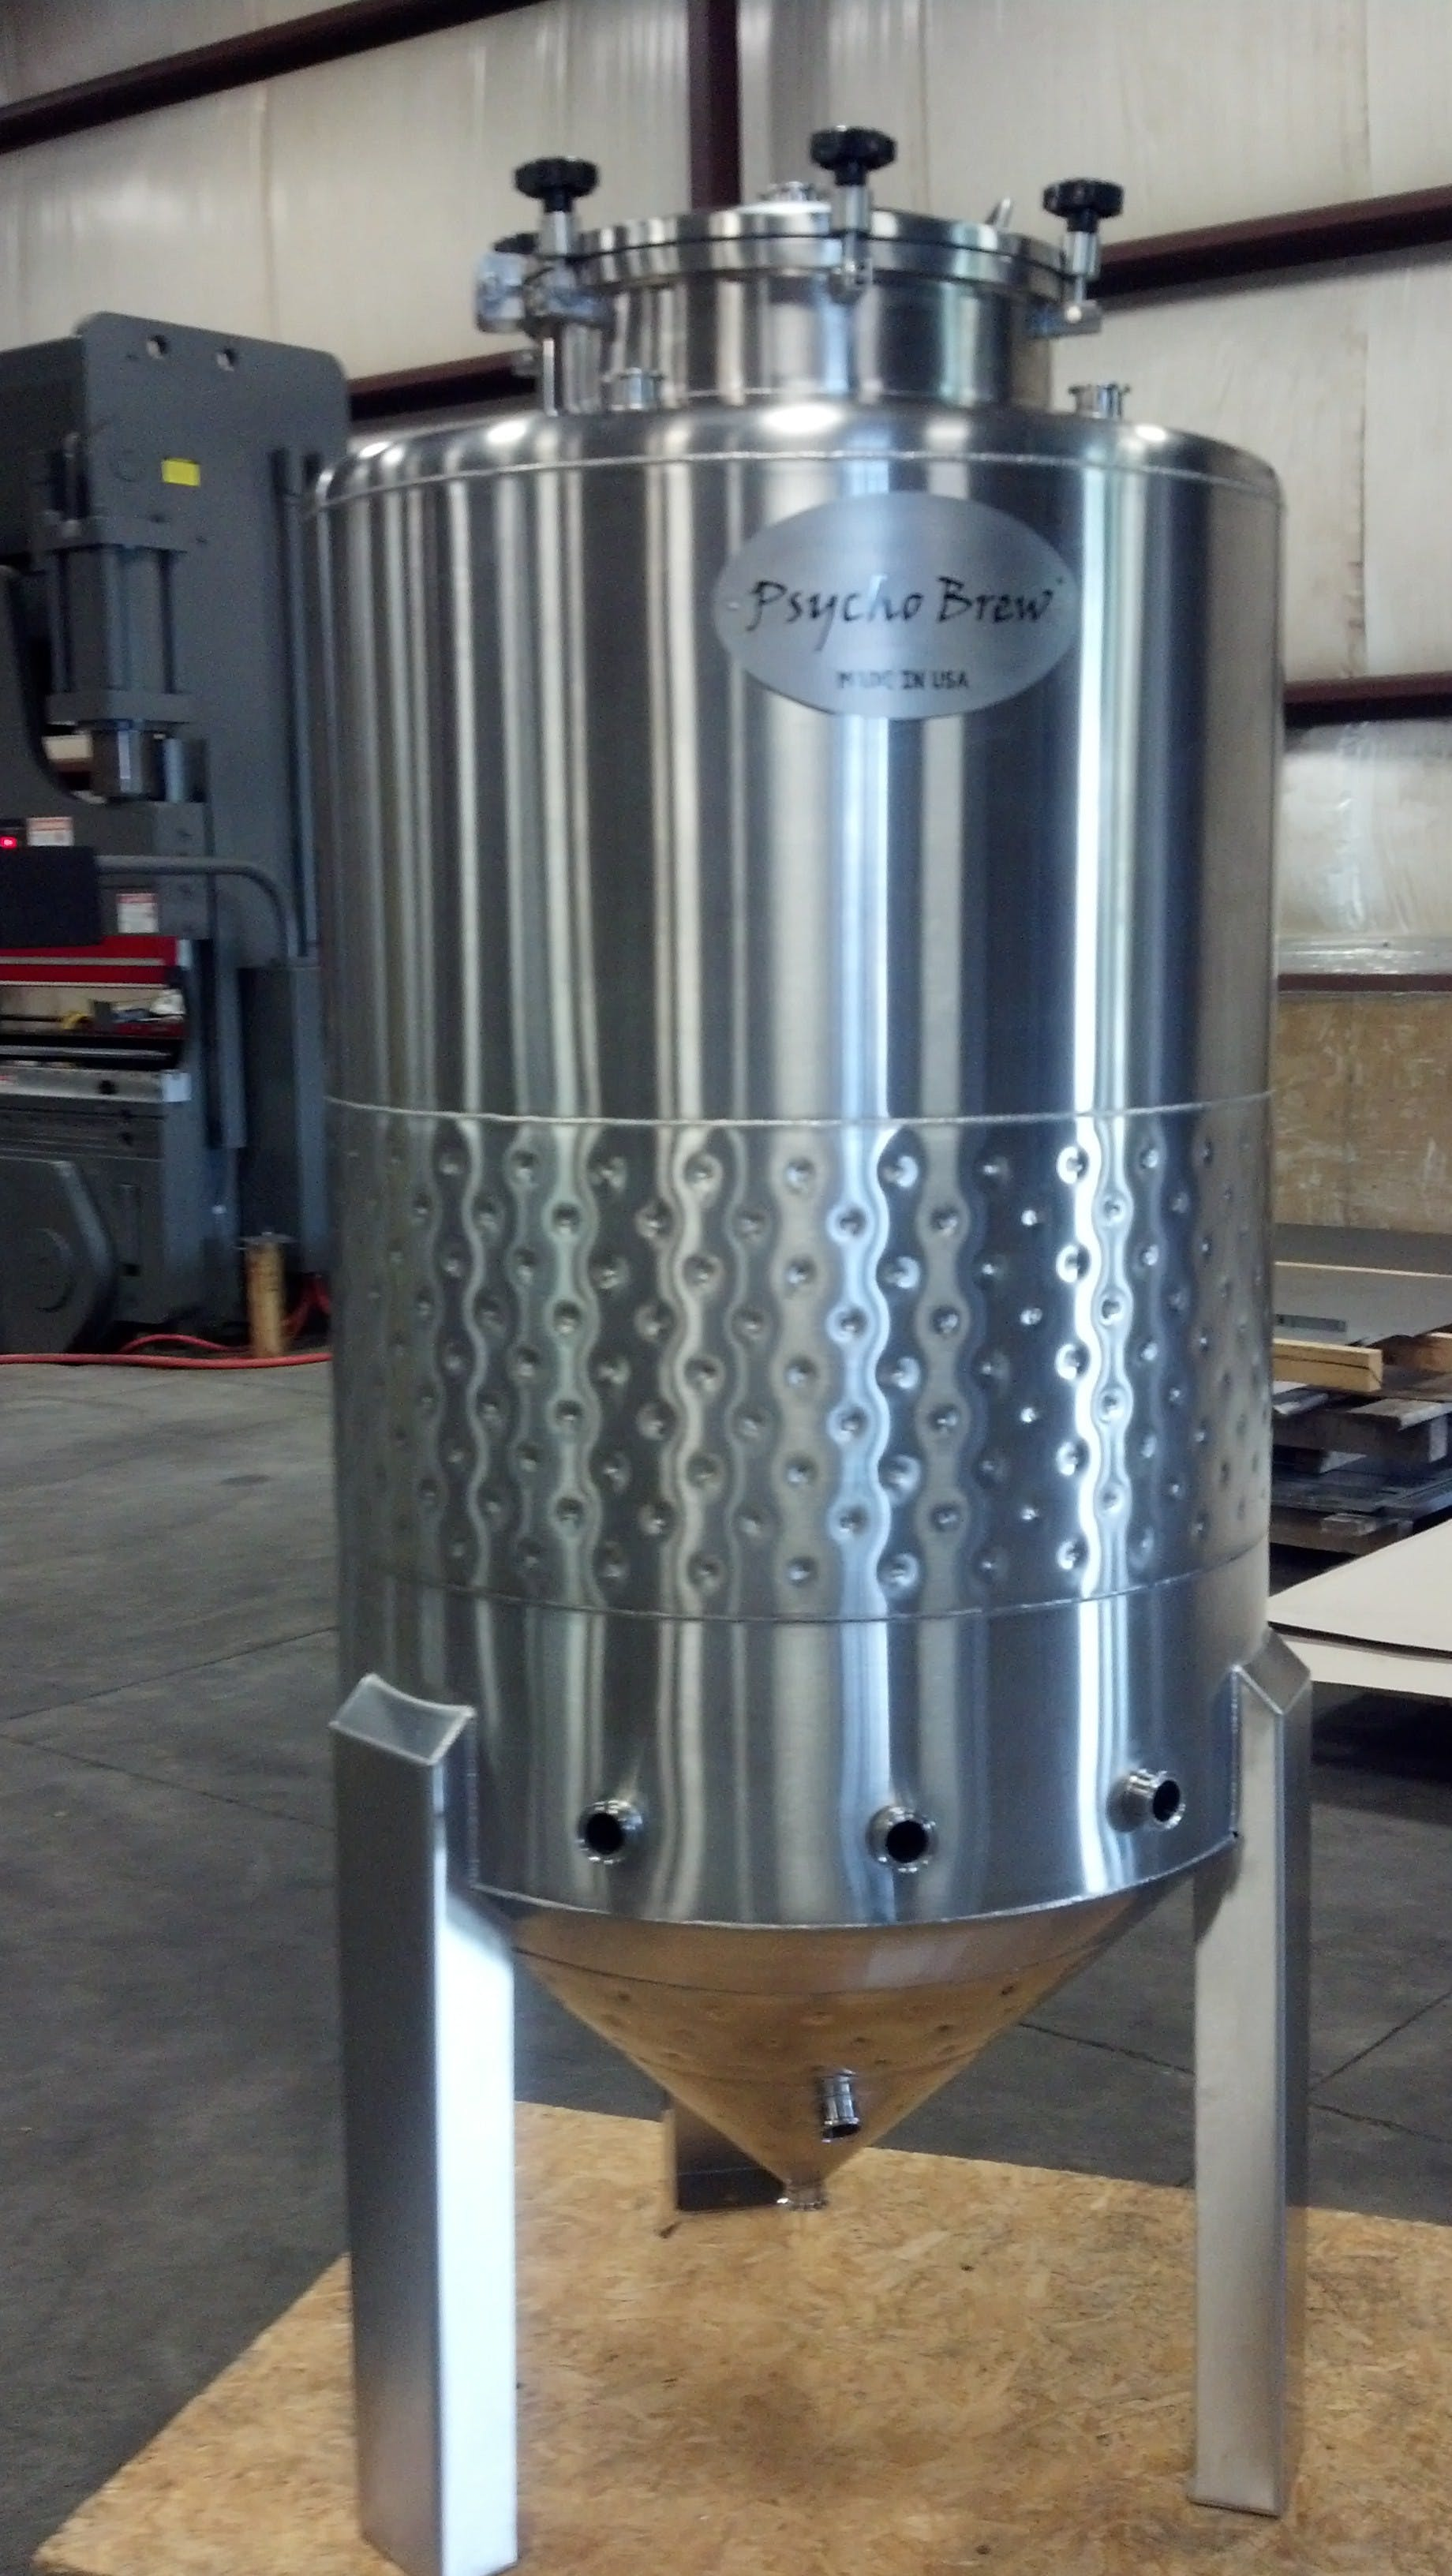 5 bbl Conical Jacketed Fermenter Fermenter sold by Psycho Brew